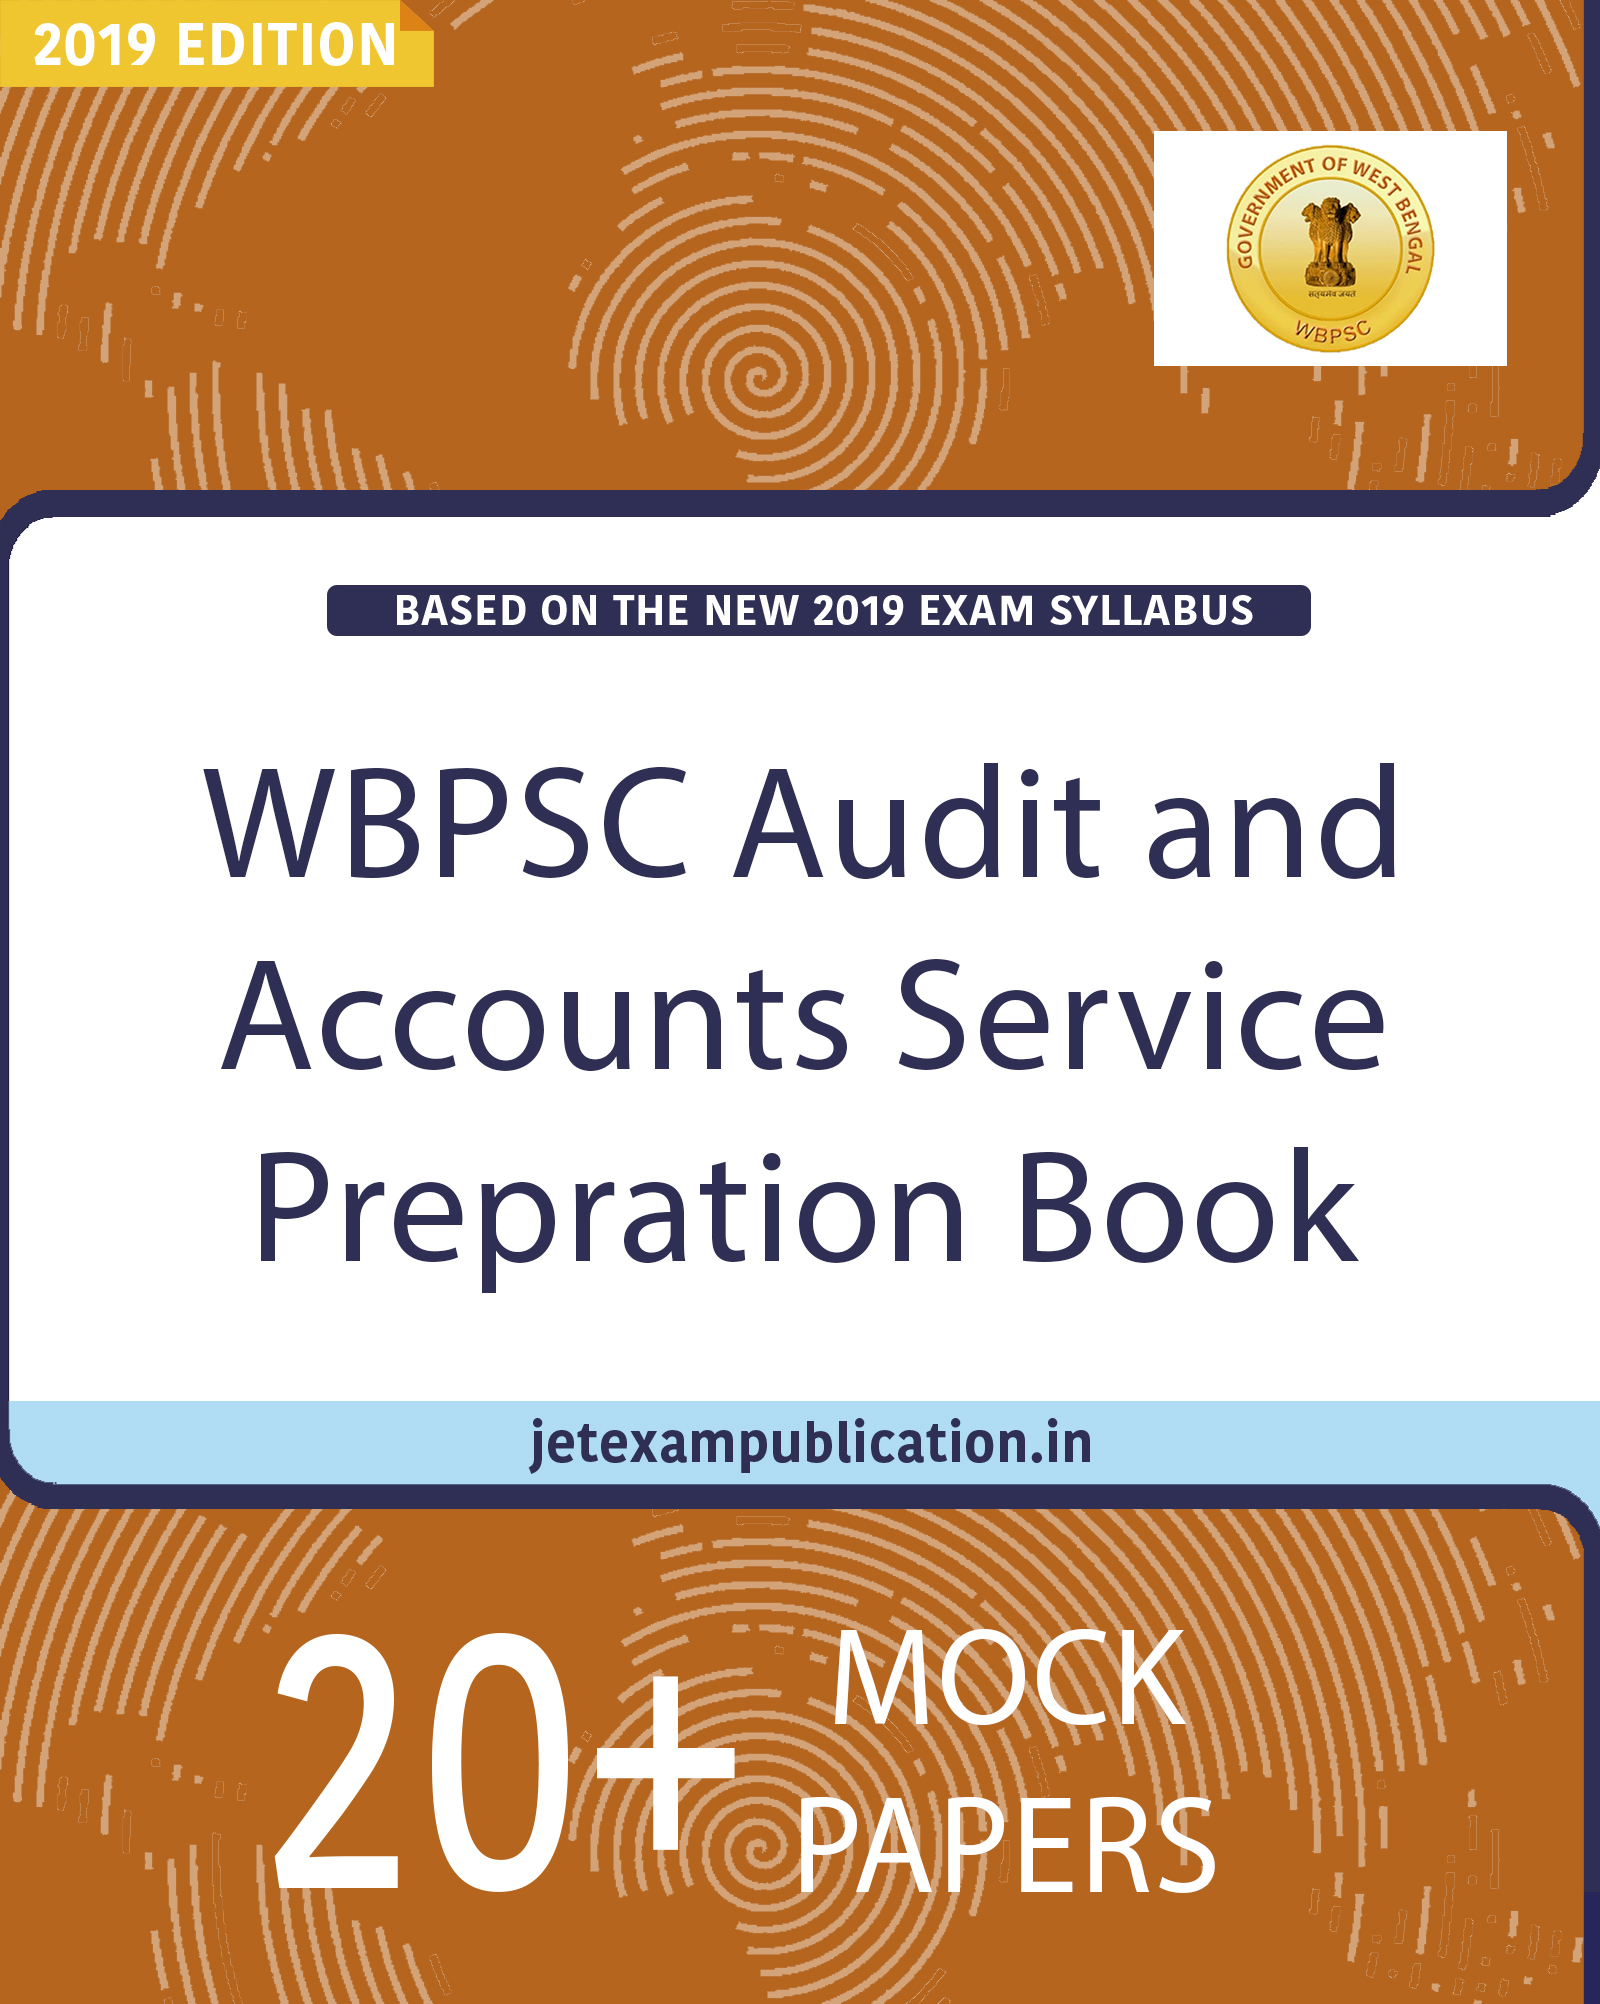 WBPSC Audit and Accounts Service Prepration Book 2020